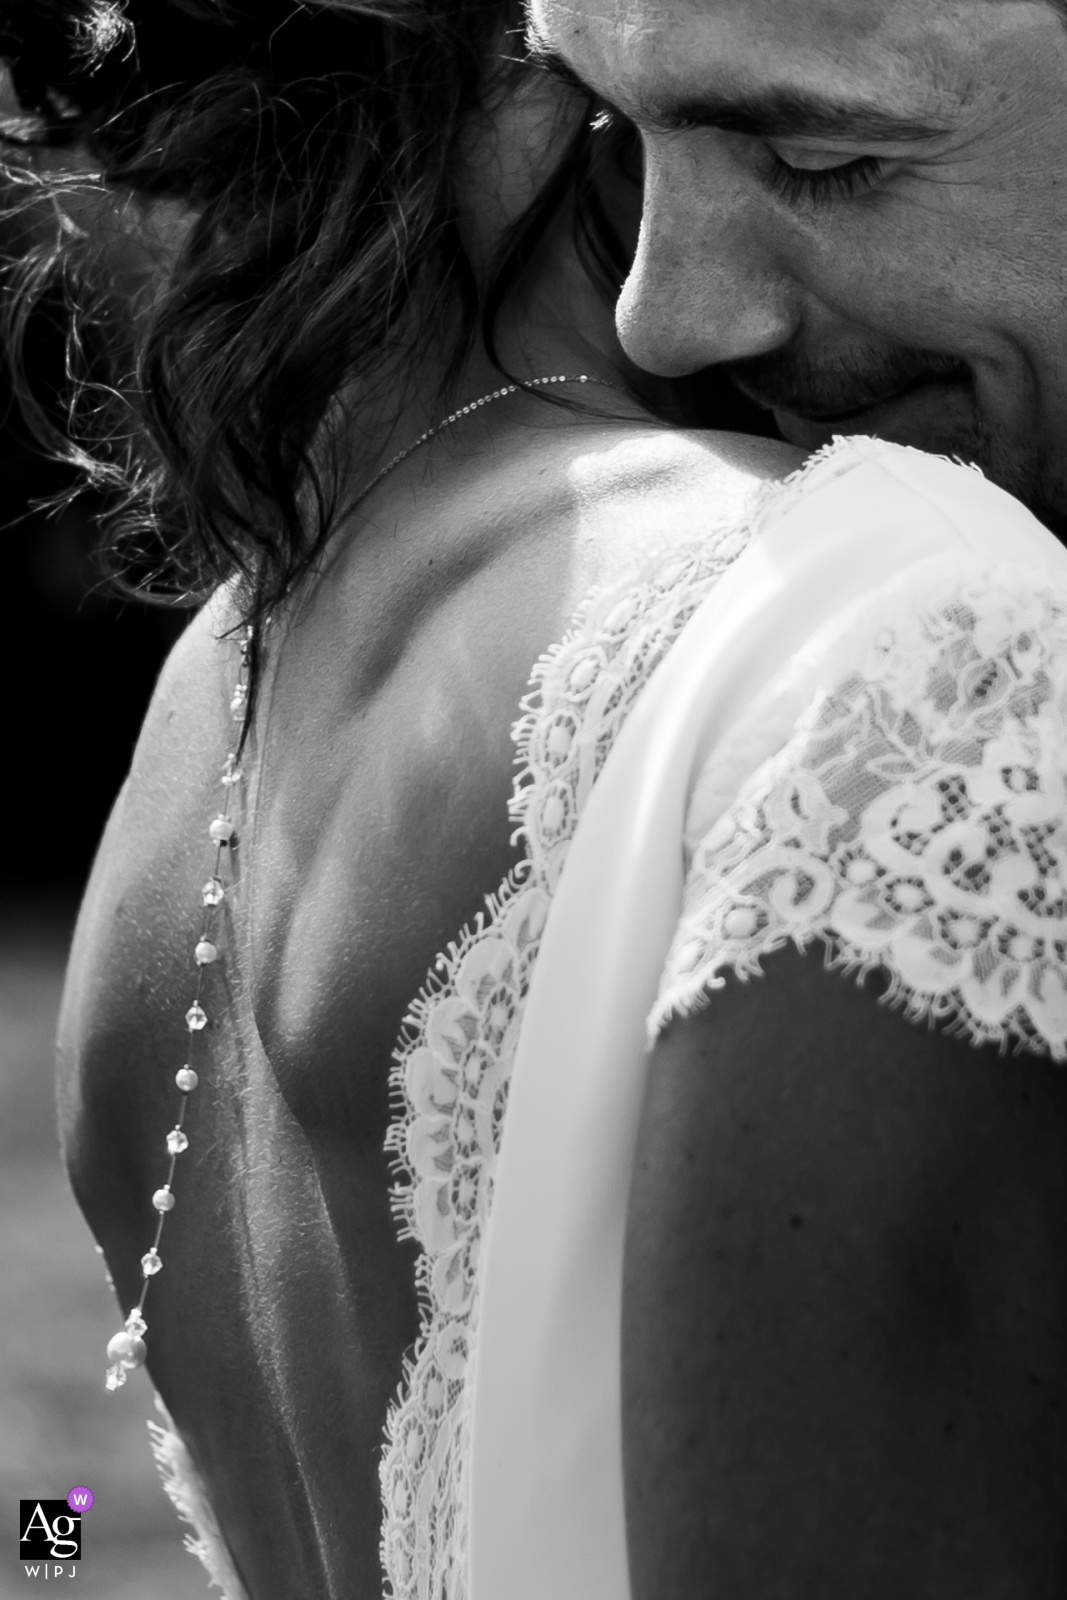 Occitanie wedding detail  image of the bride's dress and jewelry